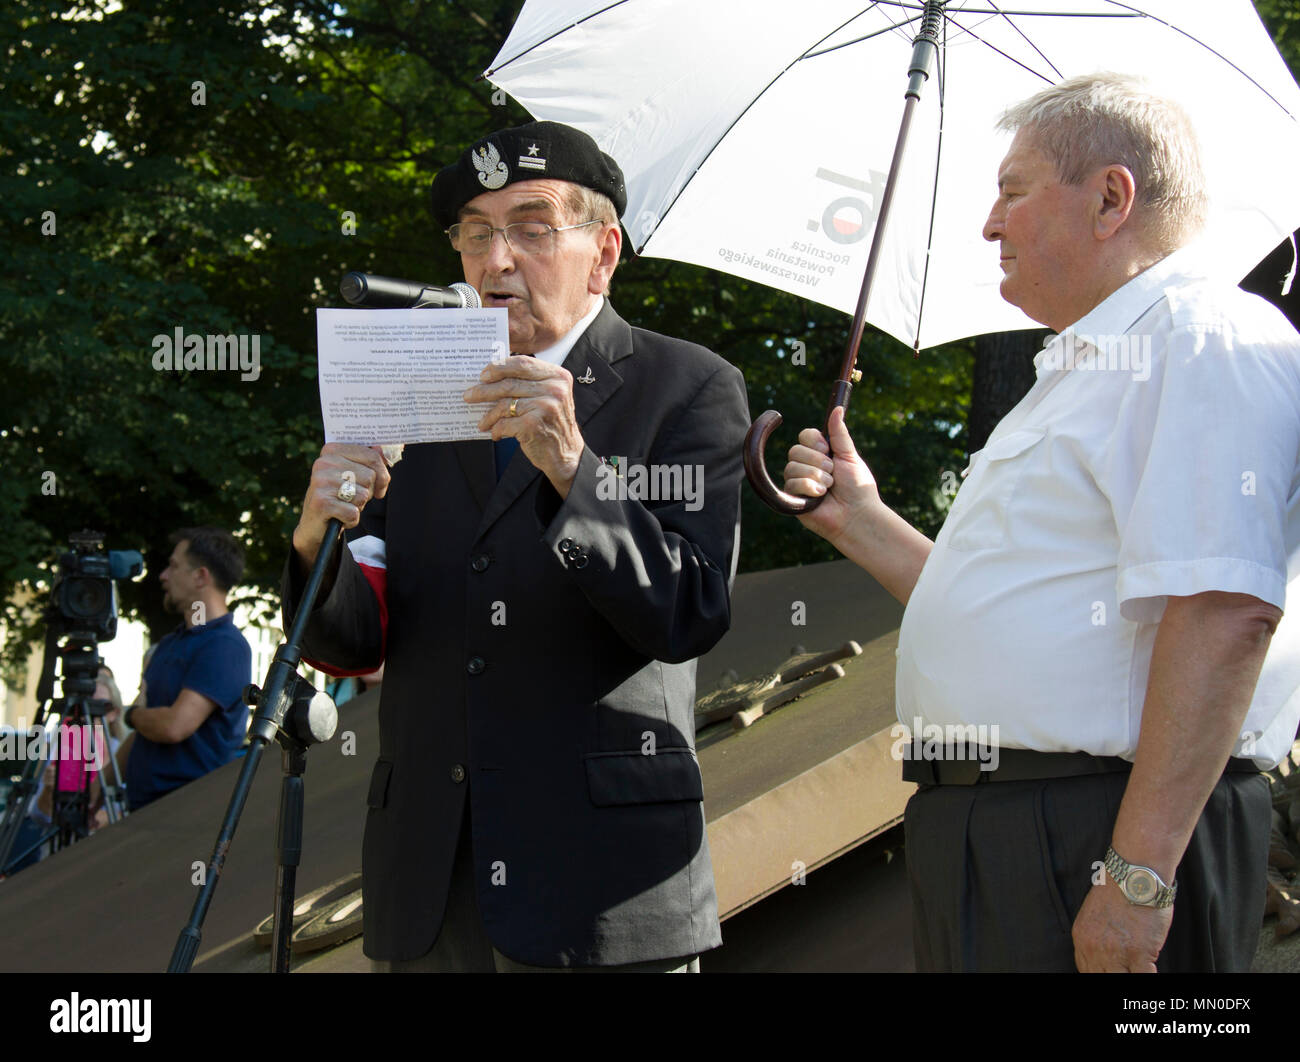 POZNAN-Poland –Maj. Janusz Gunderman, member of the Polish Resistance Home Army or Armia Krajowa, addresses the audience about his experience 73rd annual Warsaw Uprising Ceremony Aug. 1, 2017. The 1944 Warsaw Uprising against the Germans was one last attempt to save Poland's independence during World War II. The uprising lasted for 63 days, ending after a massive retaliation by the Nazis. On invitation from the Polish governor, members of the Mission Command Element-Atlantic Resolve participated in the event. The MCE, now based in Poznan at the invitation of the Polish government as part of ou Stock Photo